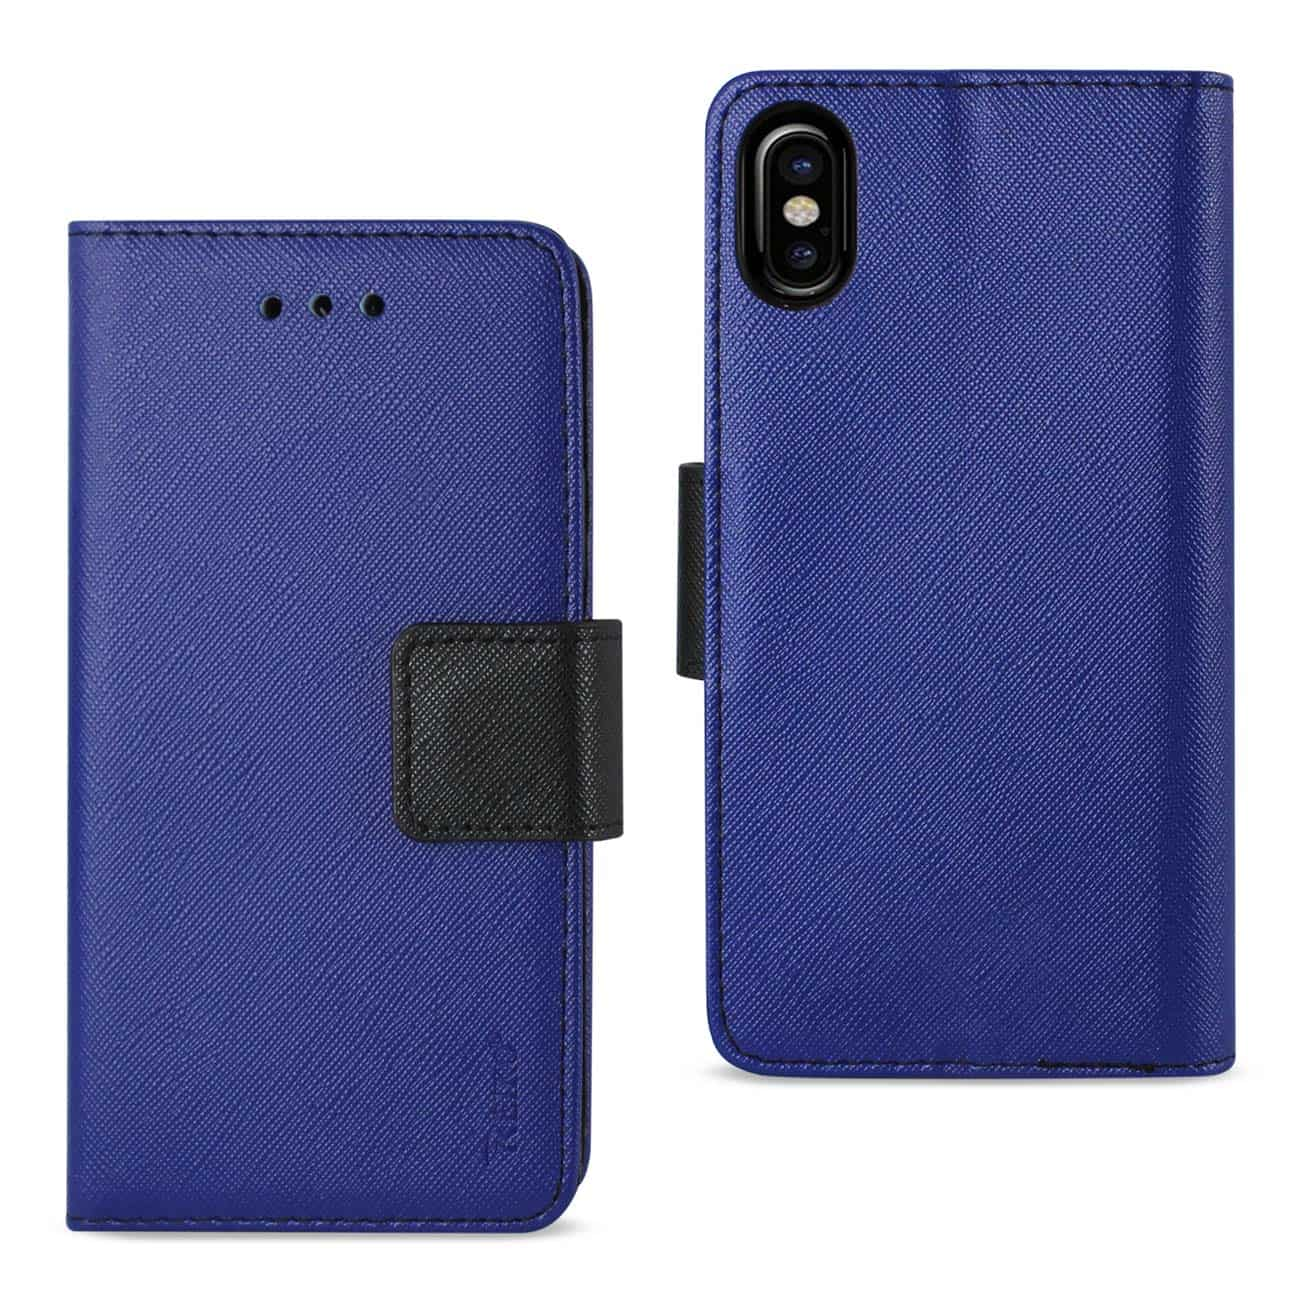 IPHONE X 3-IN-1 WALLET CASE IN NAVY